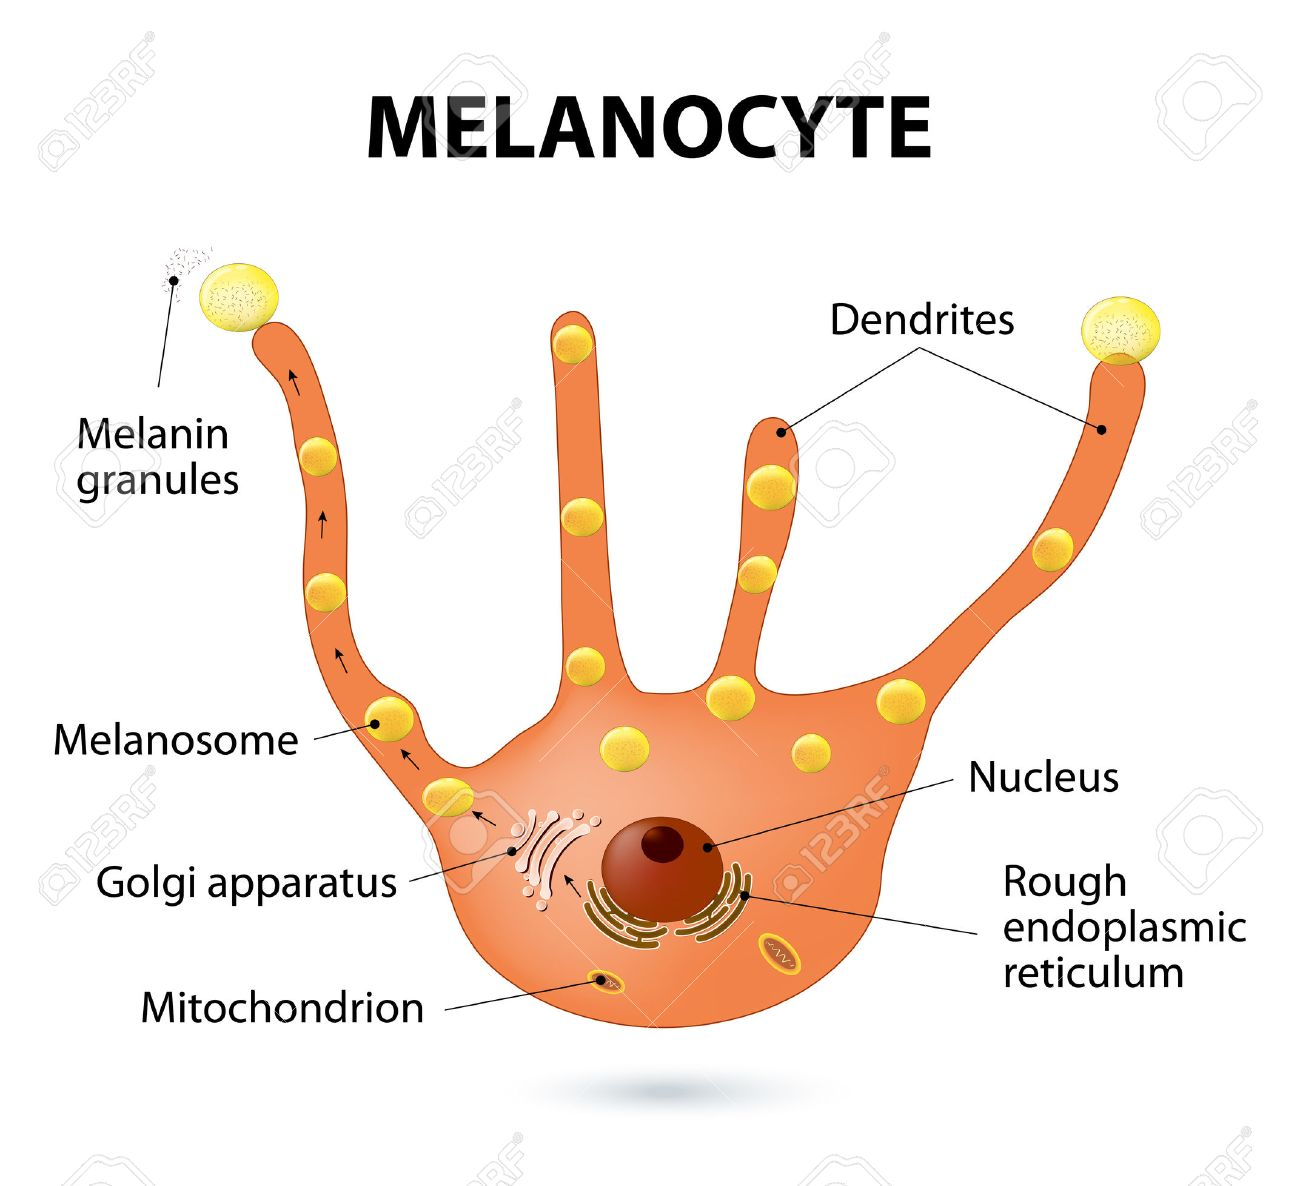 melanocyte, melanin and melanogenesis  melanocyte - melanin producing cells   melanin is the pigment